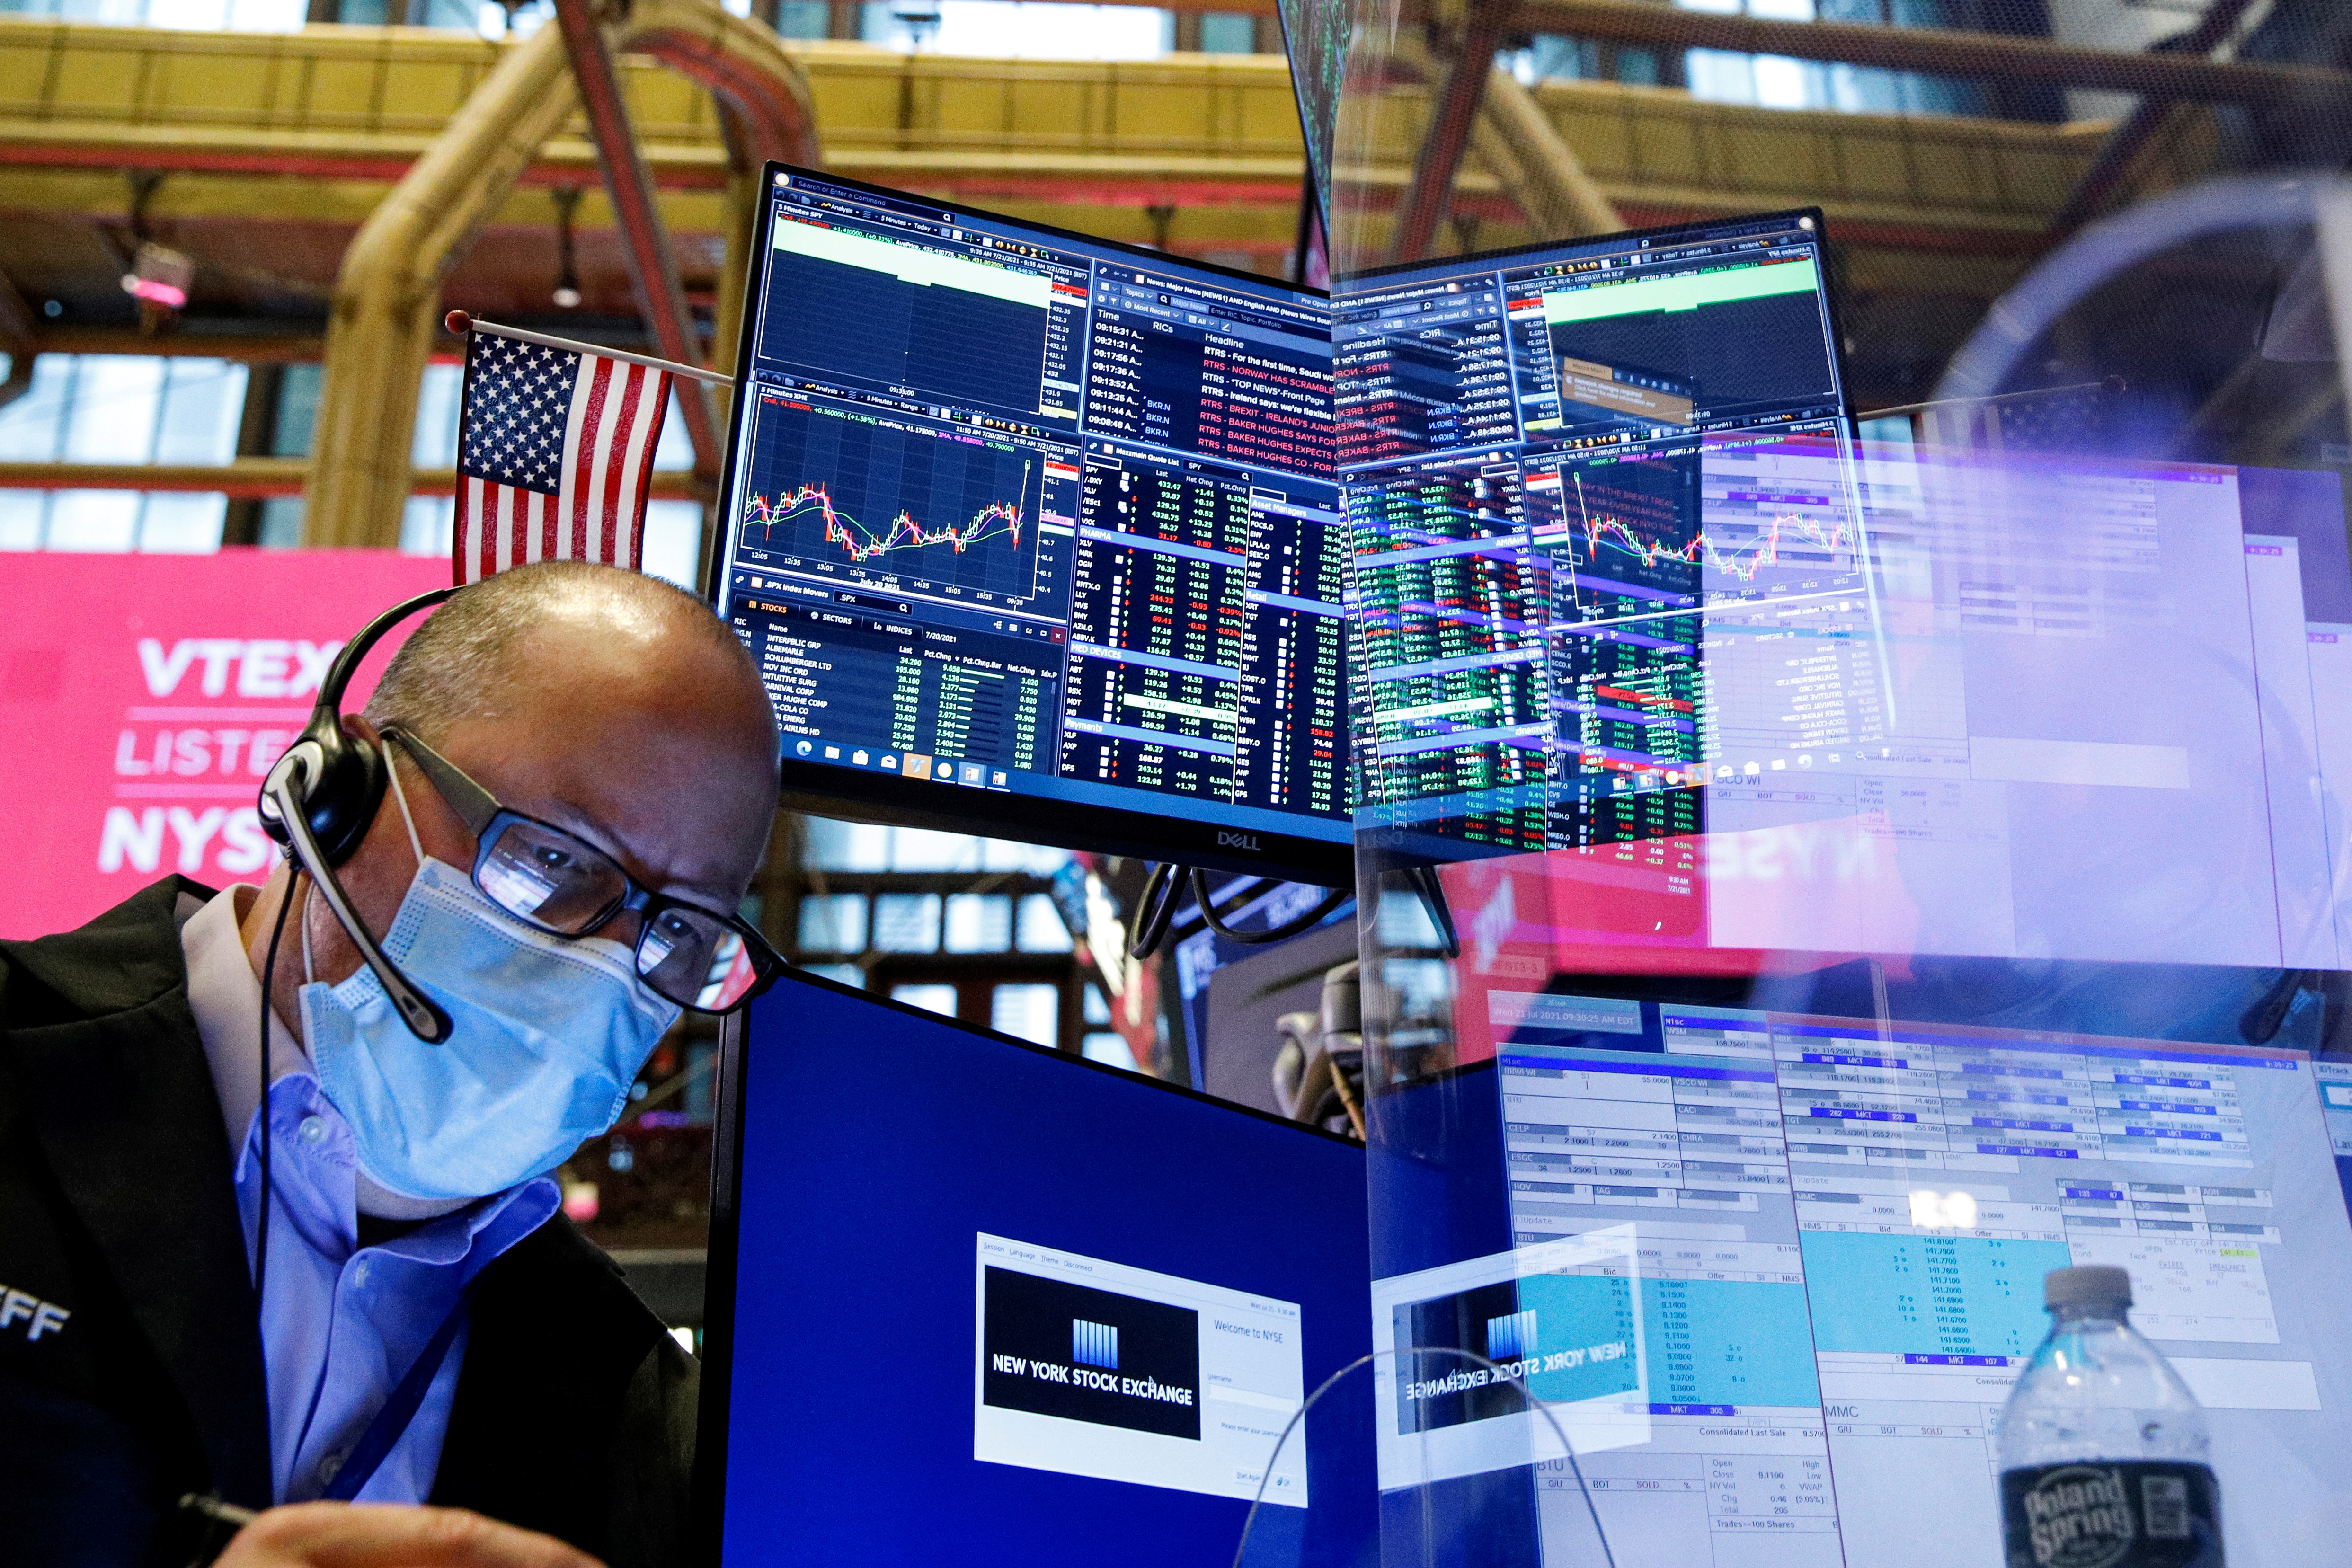 A trader works on the floor of the New York Stock Exchange (NYSE) in New York City, New York, U.S., July 21, 2021.  REUTERS/Brendan McDermid